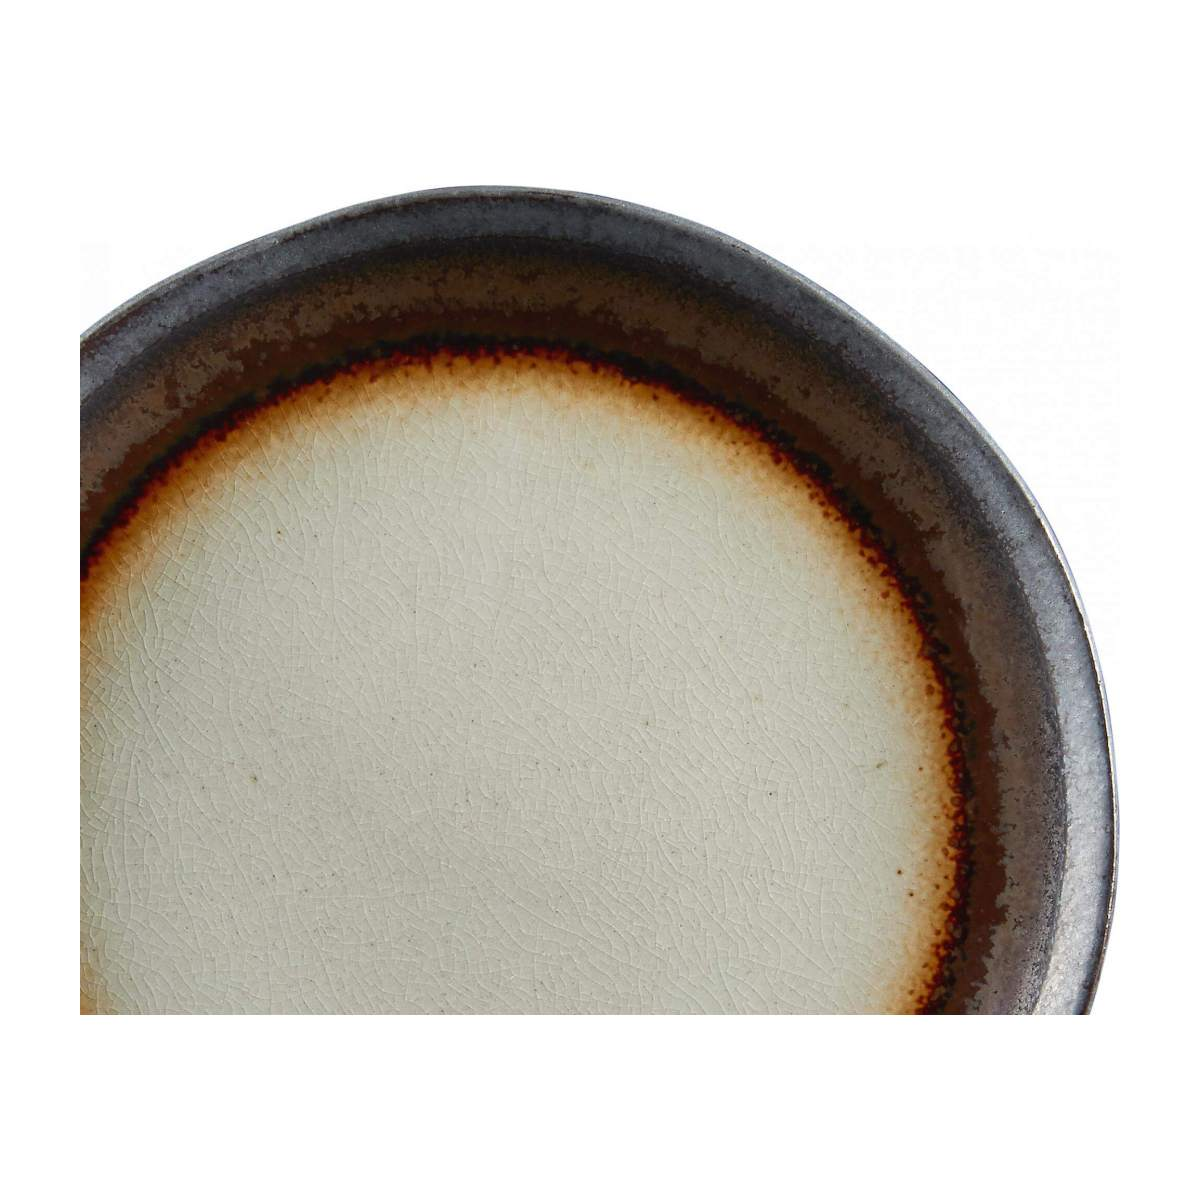 Dessert plate made of sandstone 22cm, grey and brown n°3